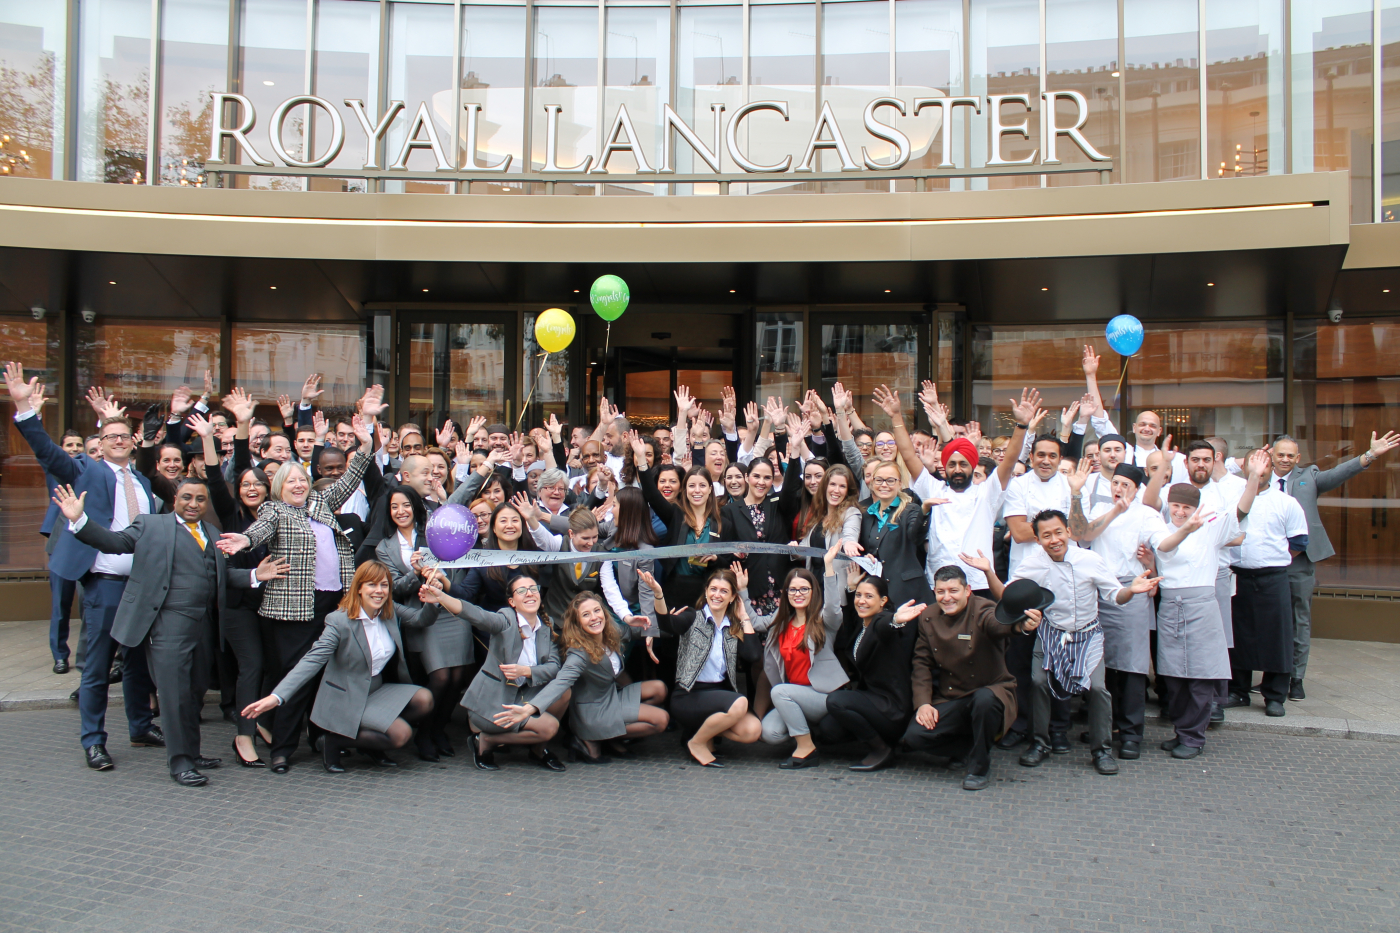 Royal Lancaster London Awarded 50th Position  The Sunday Times 'Top 100 Companies to Work